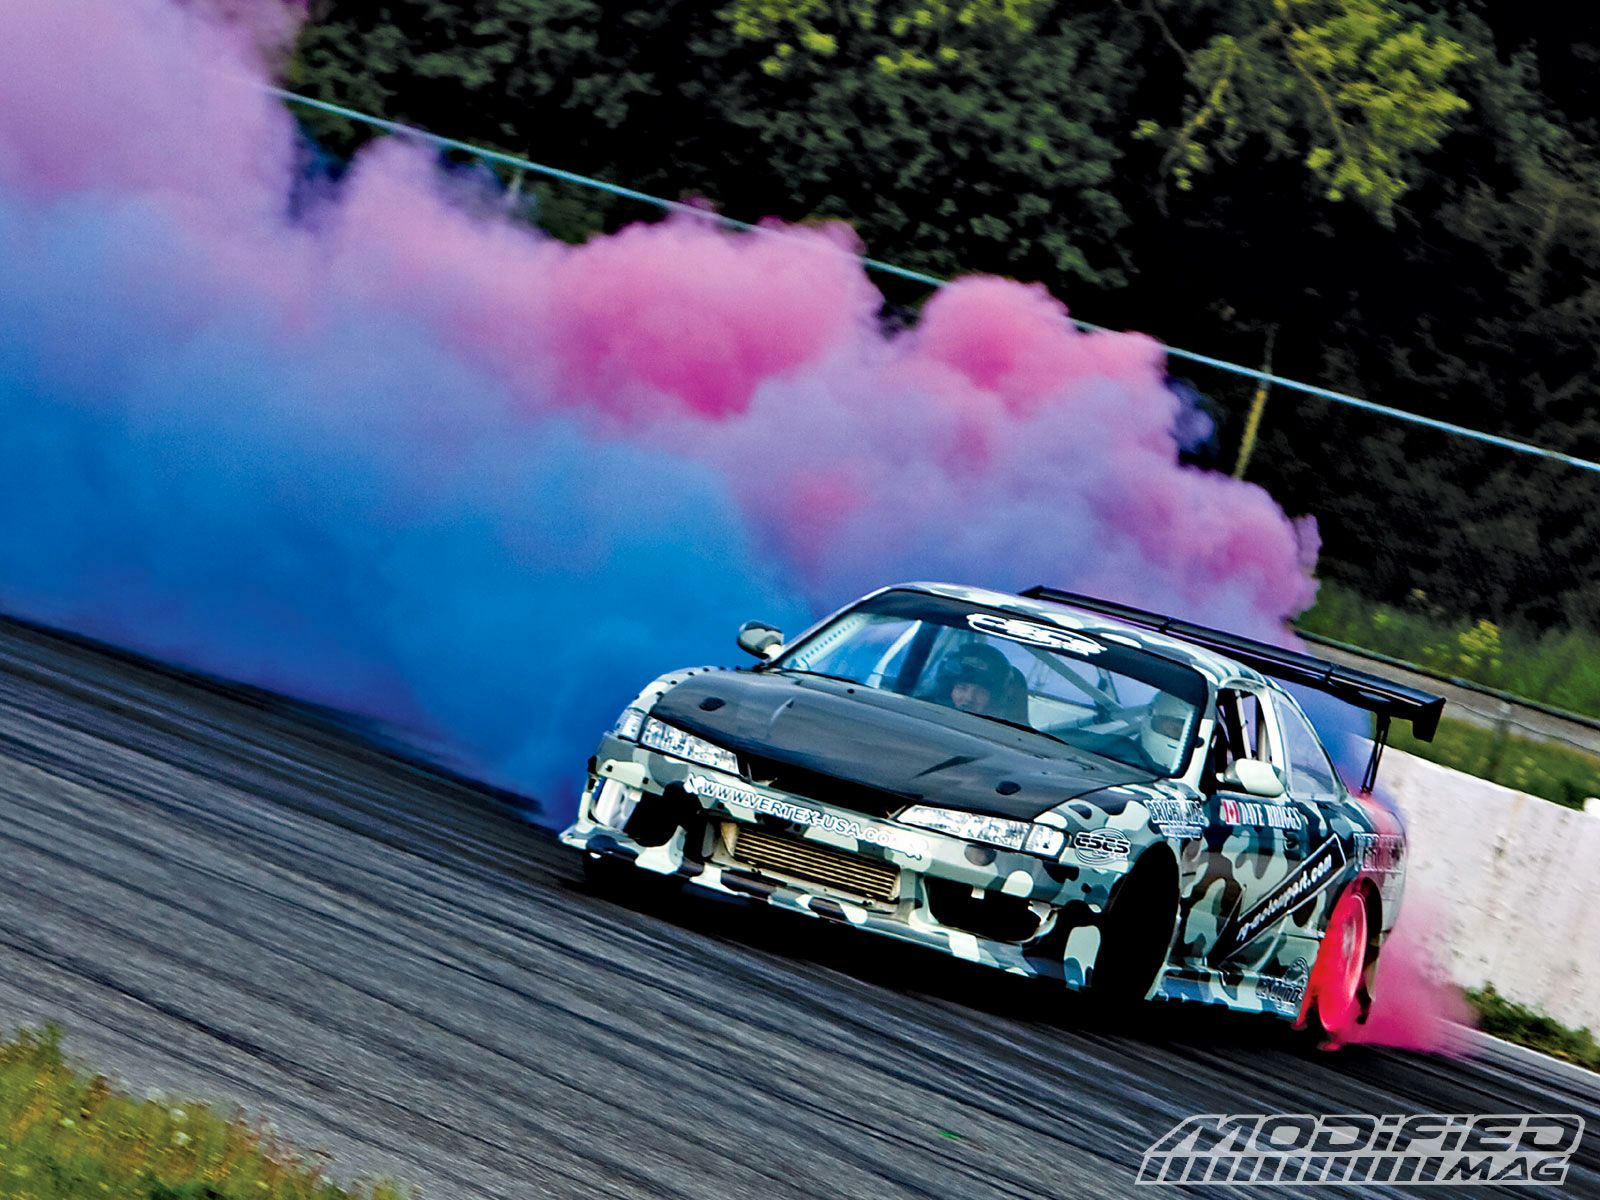 Street Drift Cars Wallpapers Top Free Street Drift Cars